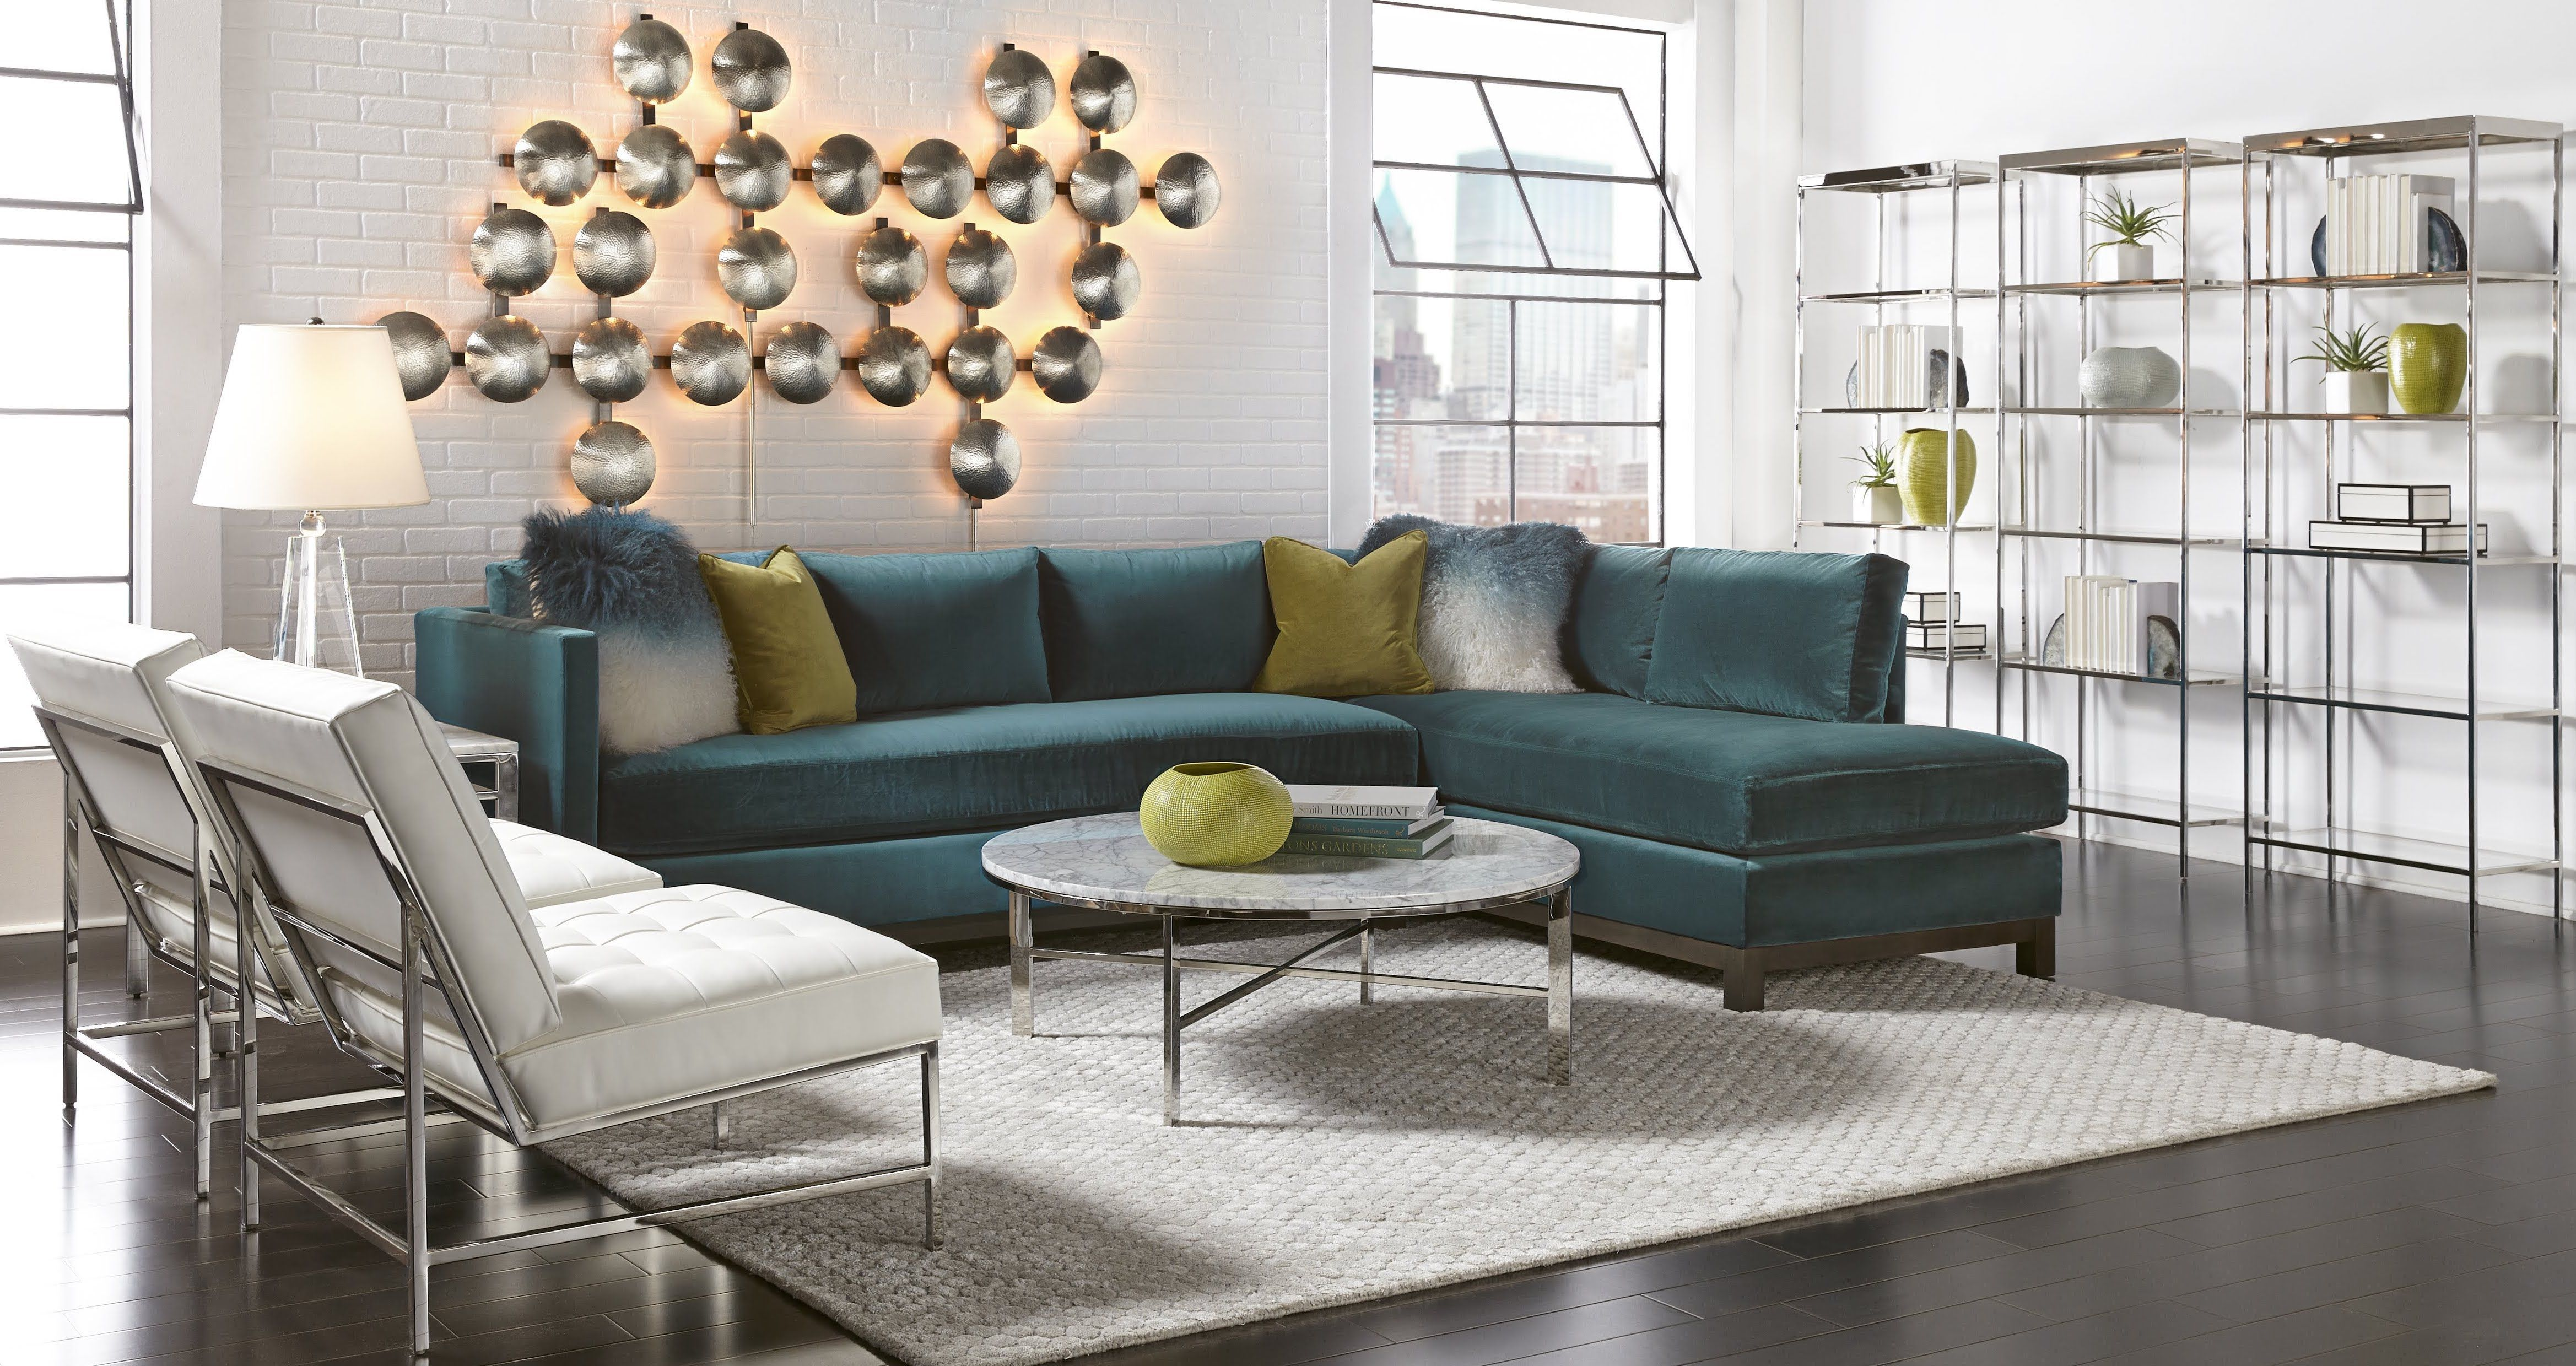 Clifton Left Sectional Mitchell Gold Bob Williams Modern Sofa Sectional Living Dining Room Home [ 2479 x 4675 Pixel ]